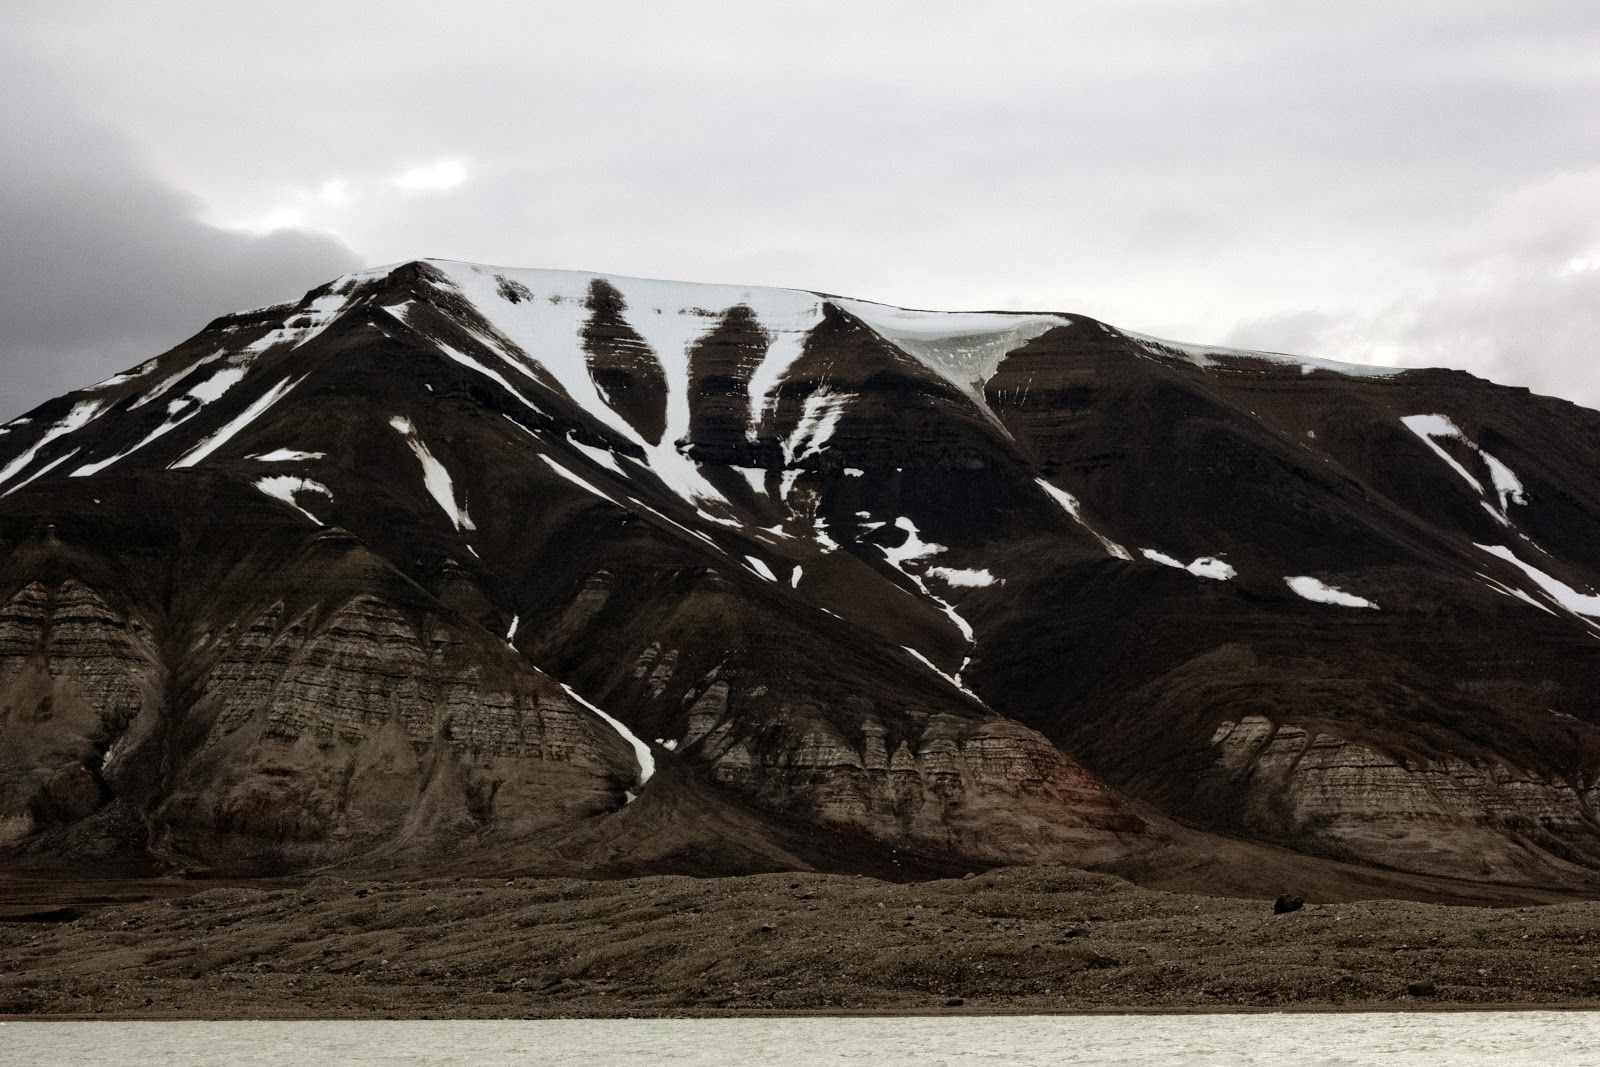 Yash: Svalbard - ghost towns and ice